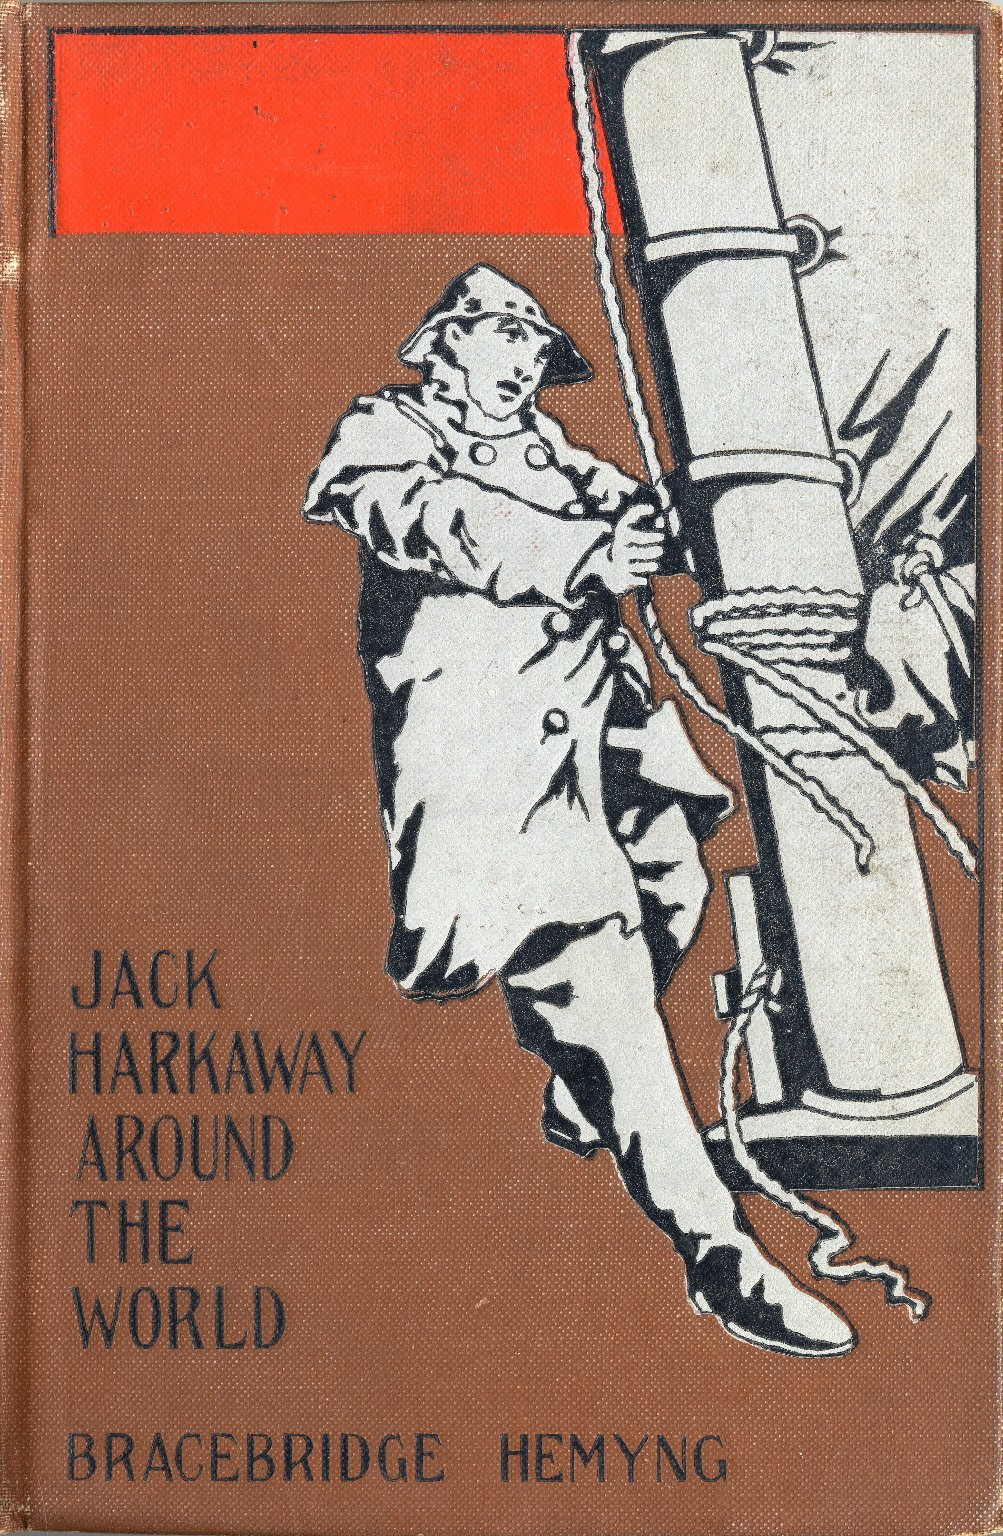 Jack Harkaway and his son's adventures around the world